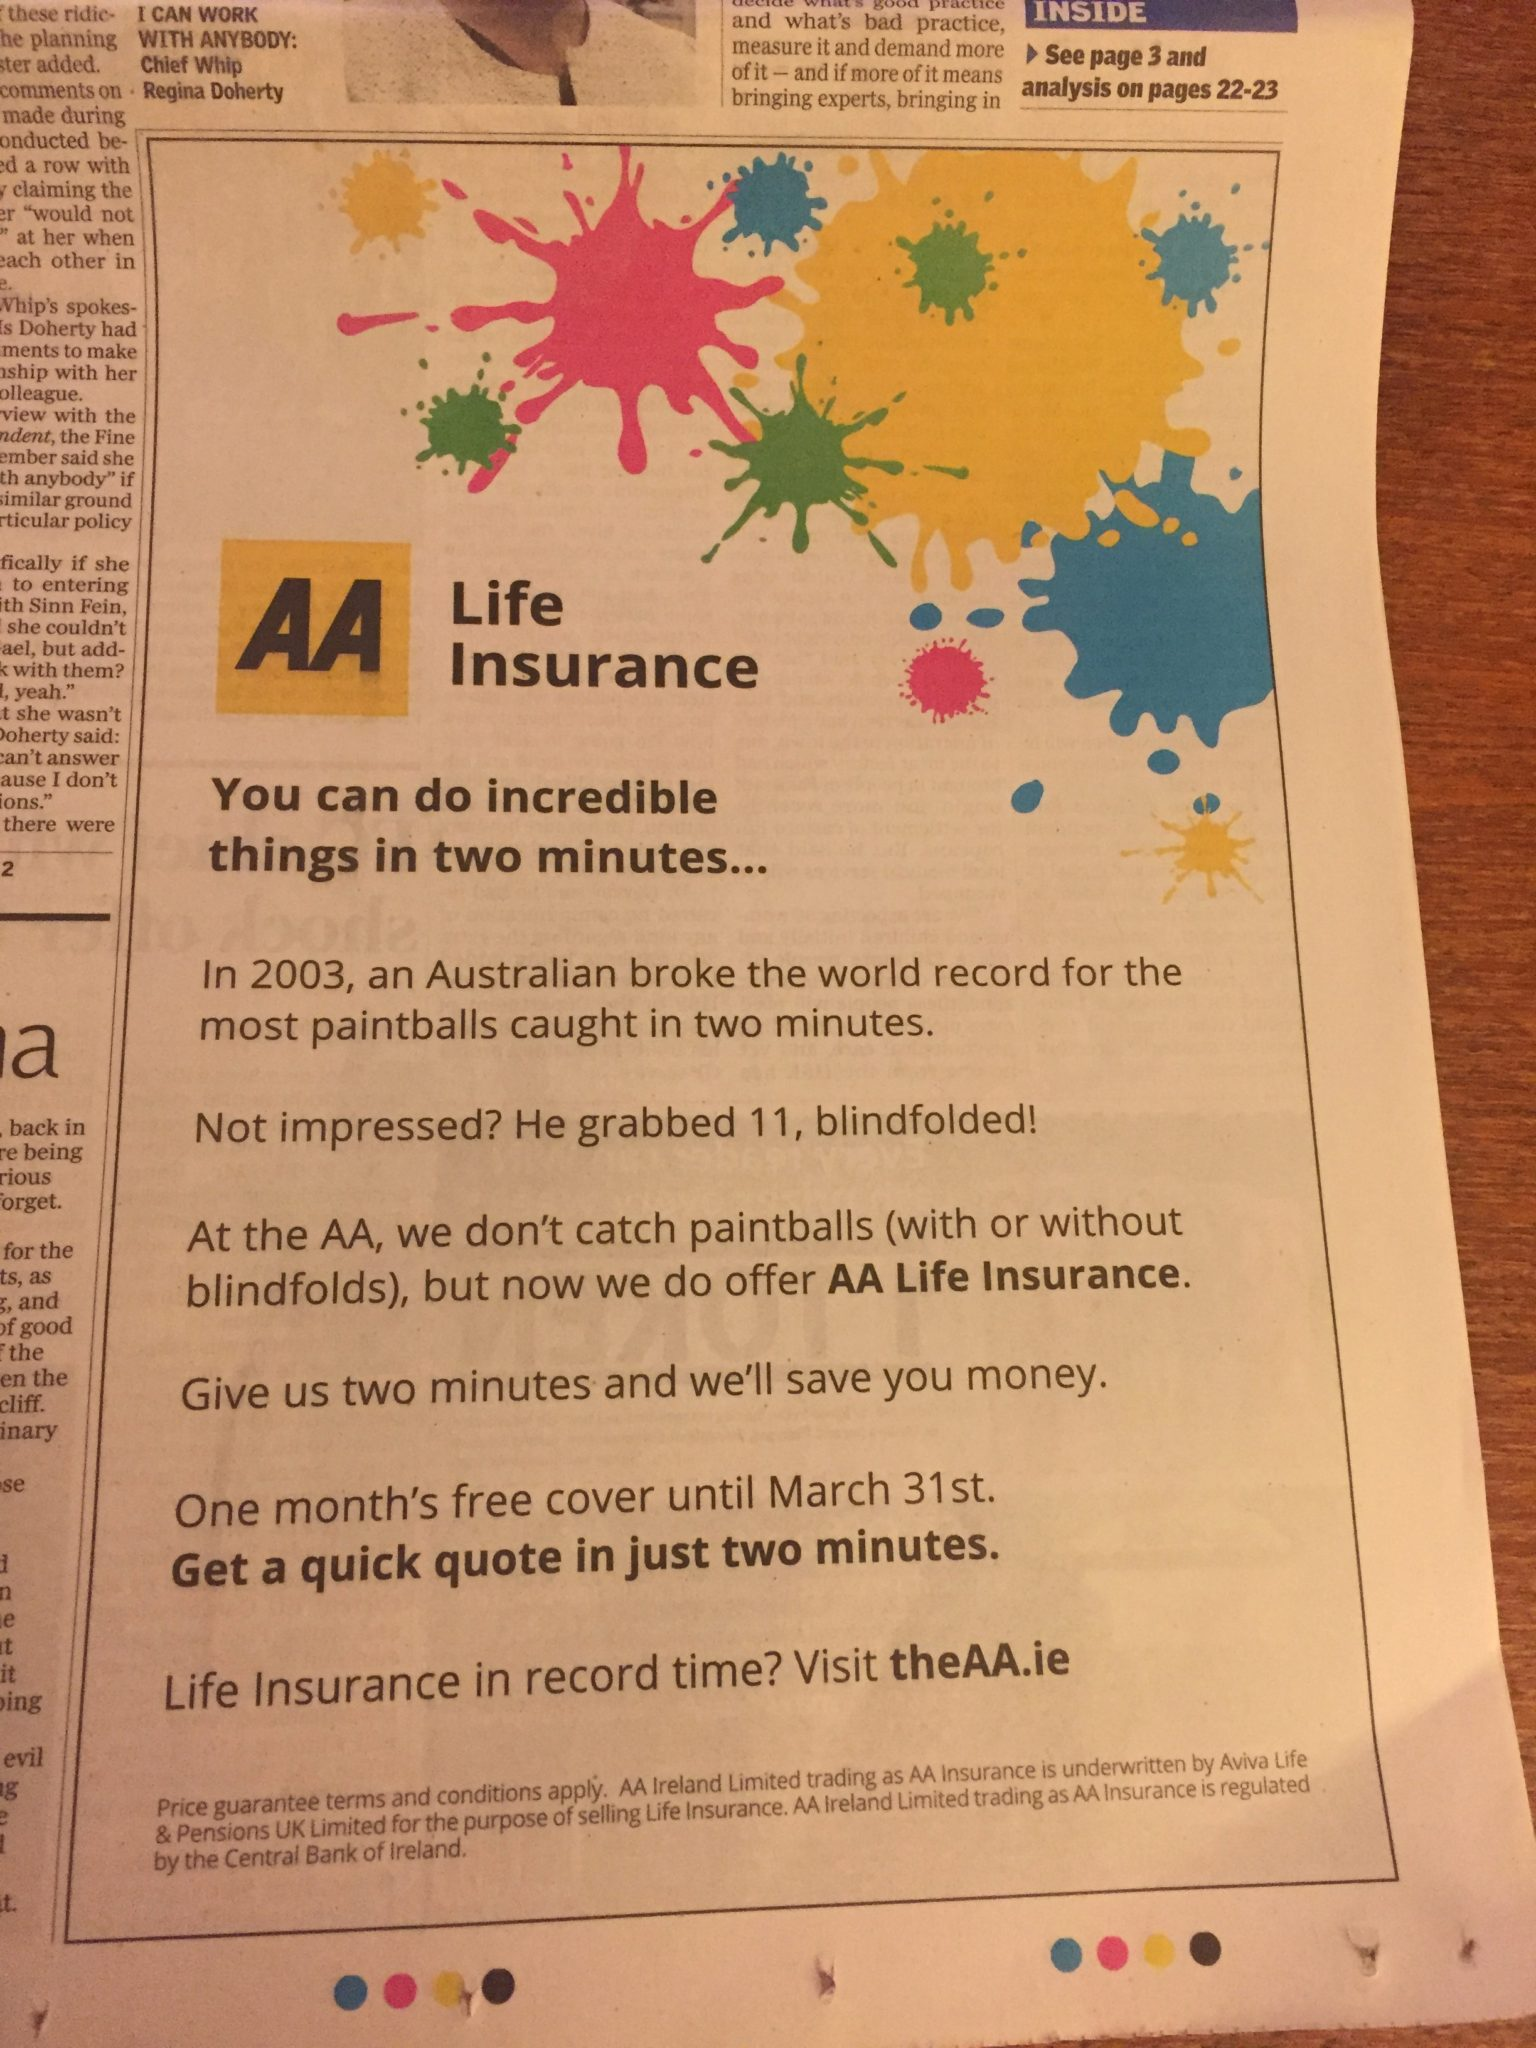 AA Life Insurance – you can do incredible things in two minutes